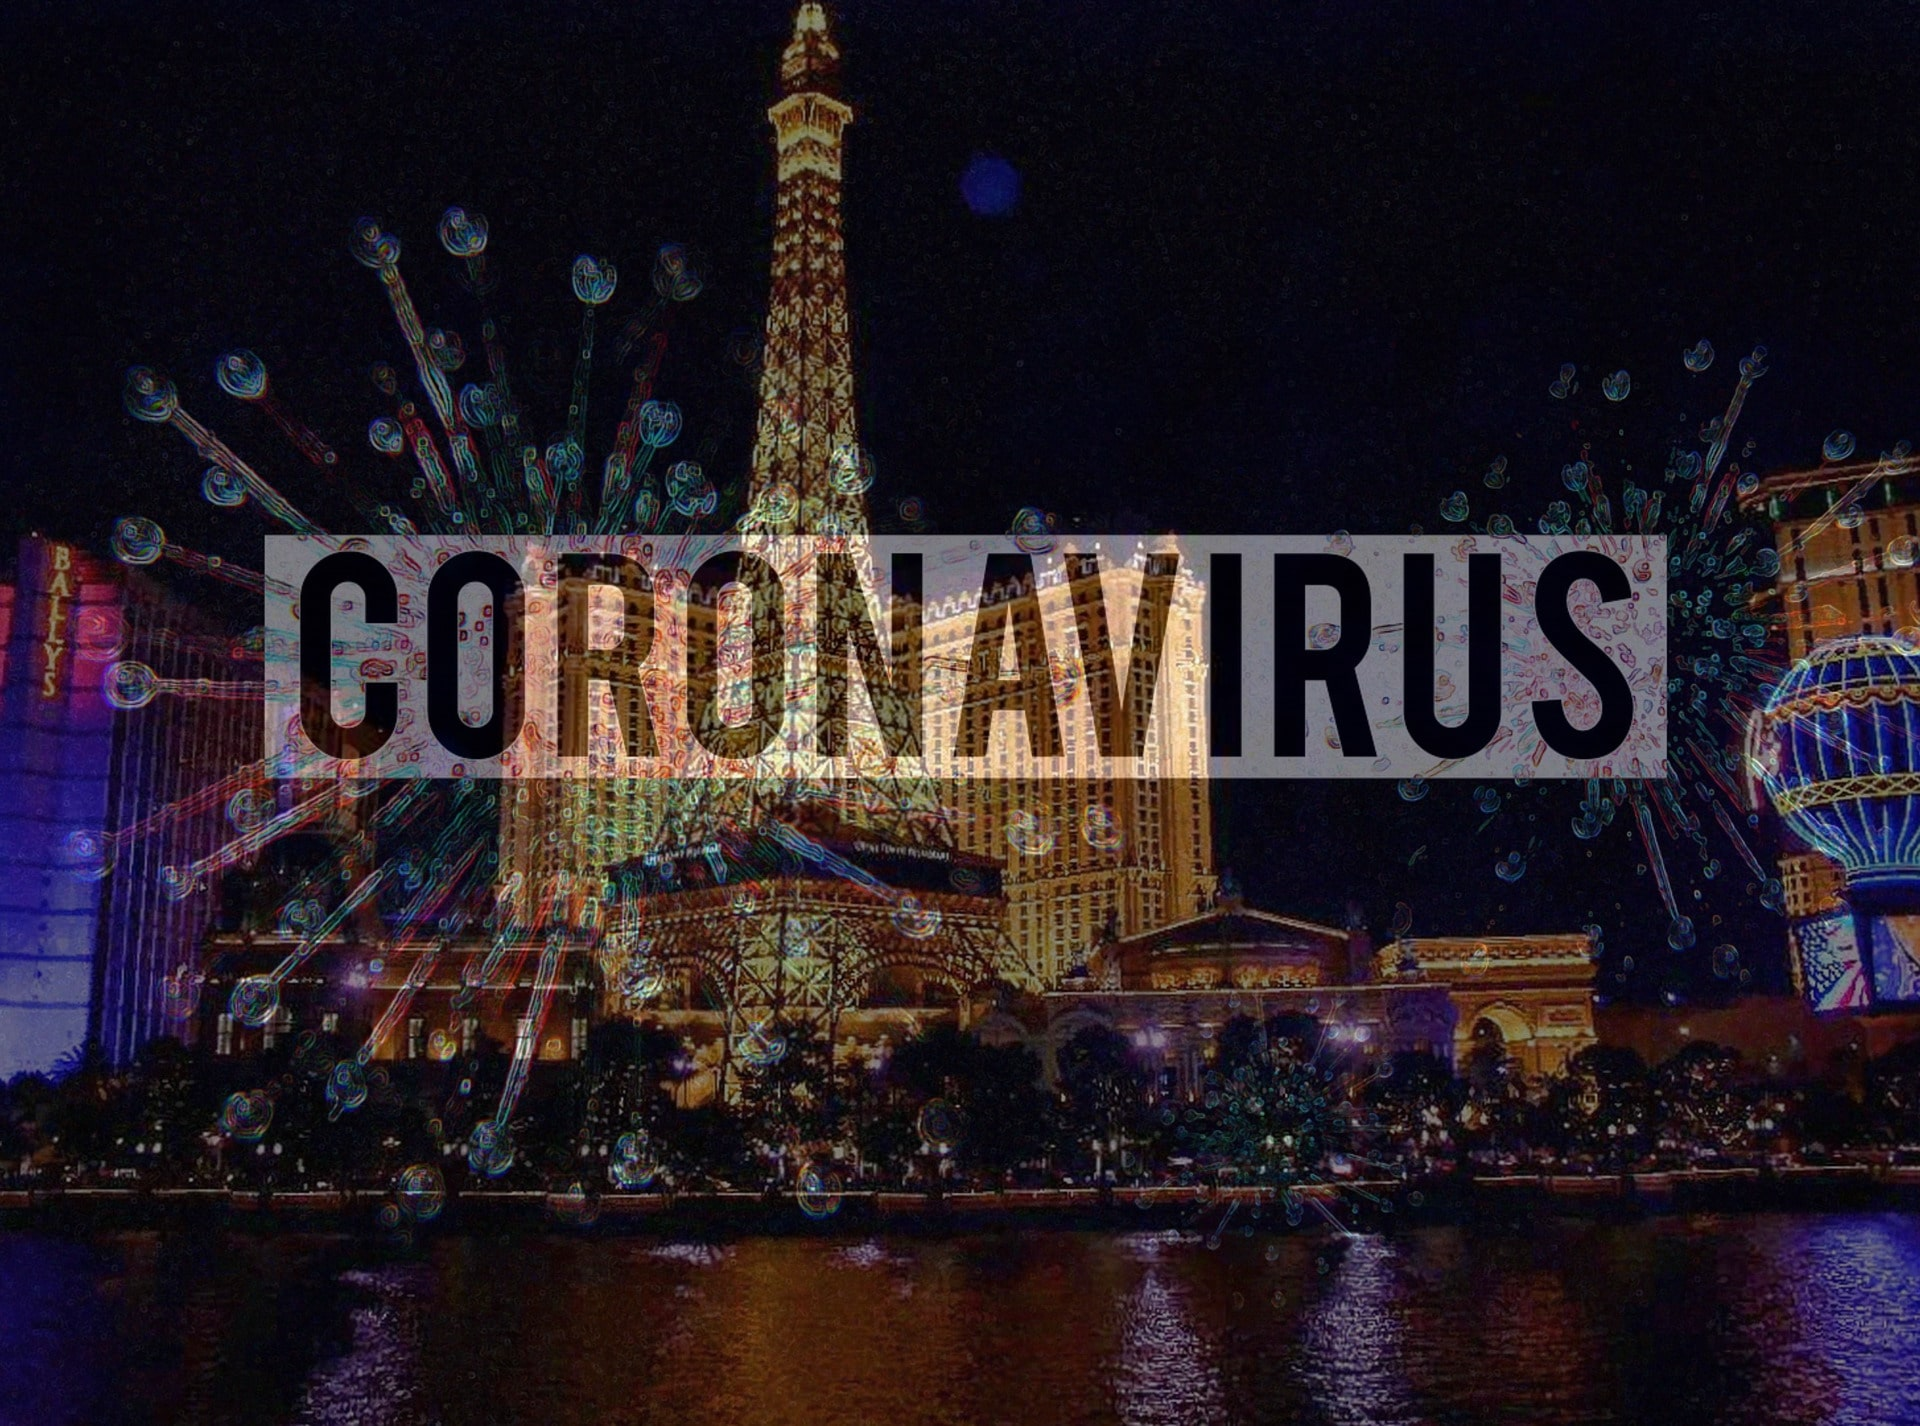 Reaction of US Land-Based Casinos to the Spread of Coronavirus